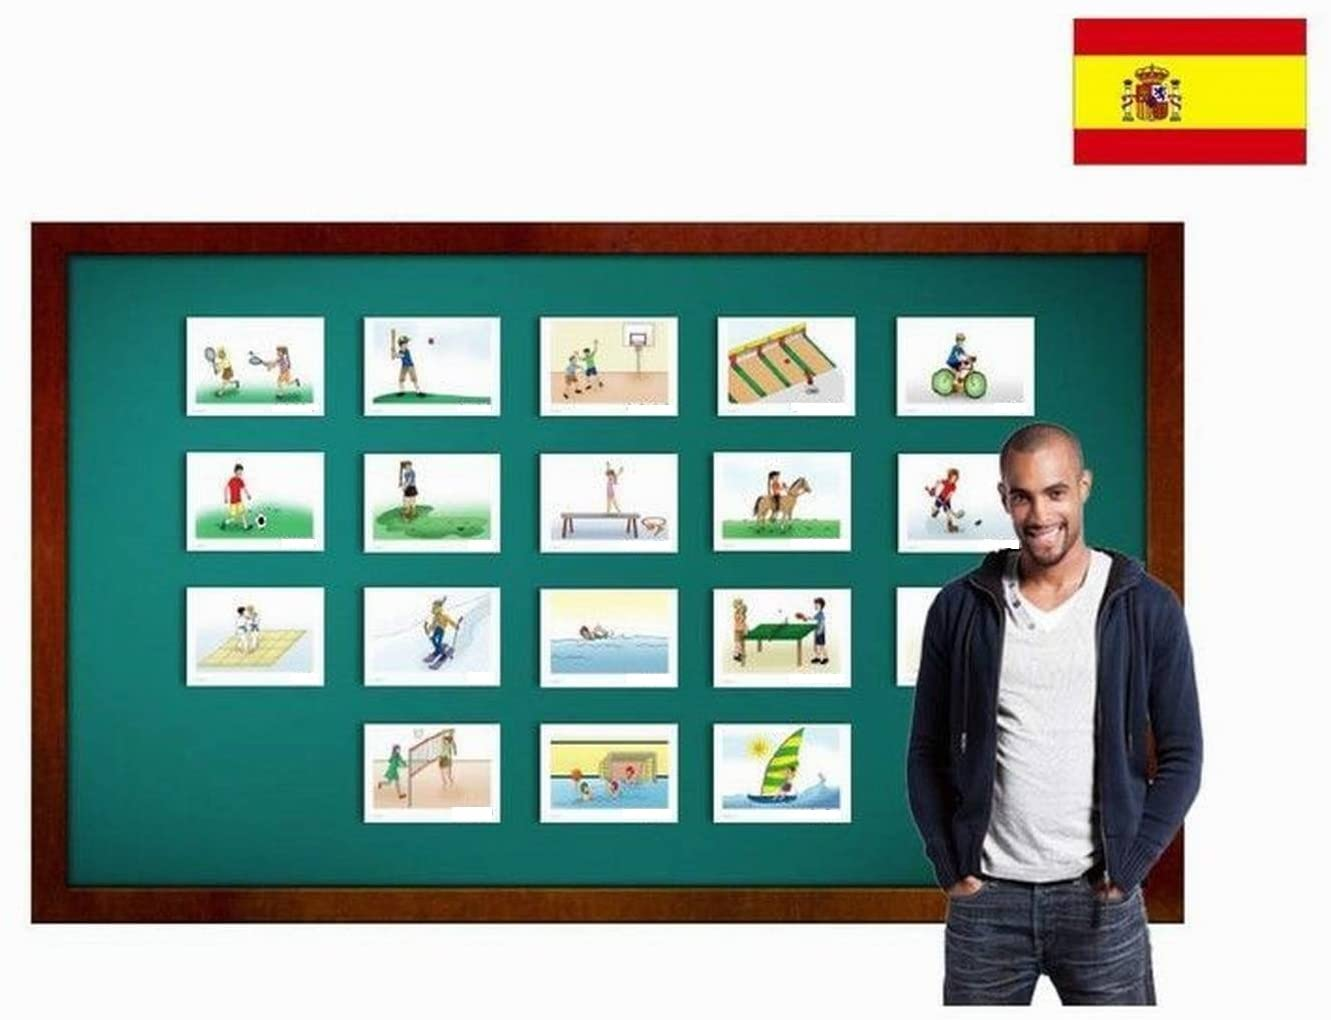 Sports Flashcards in Spanish Language - Flash Cards with Matching Bingo Game for Toddlers, Kids, Children and Adults - Size 5.83 × 8.27 in - DIN A5